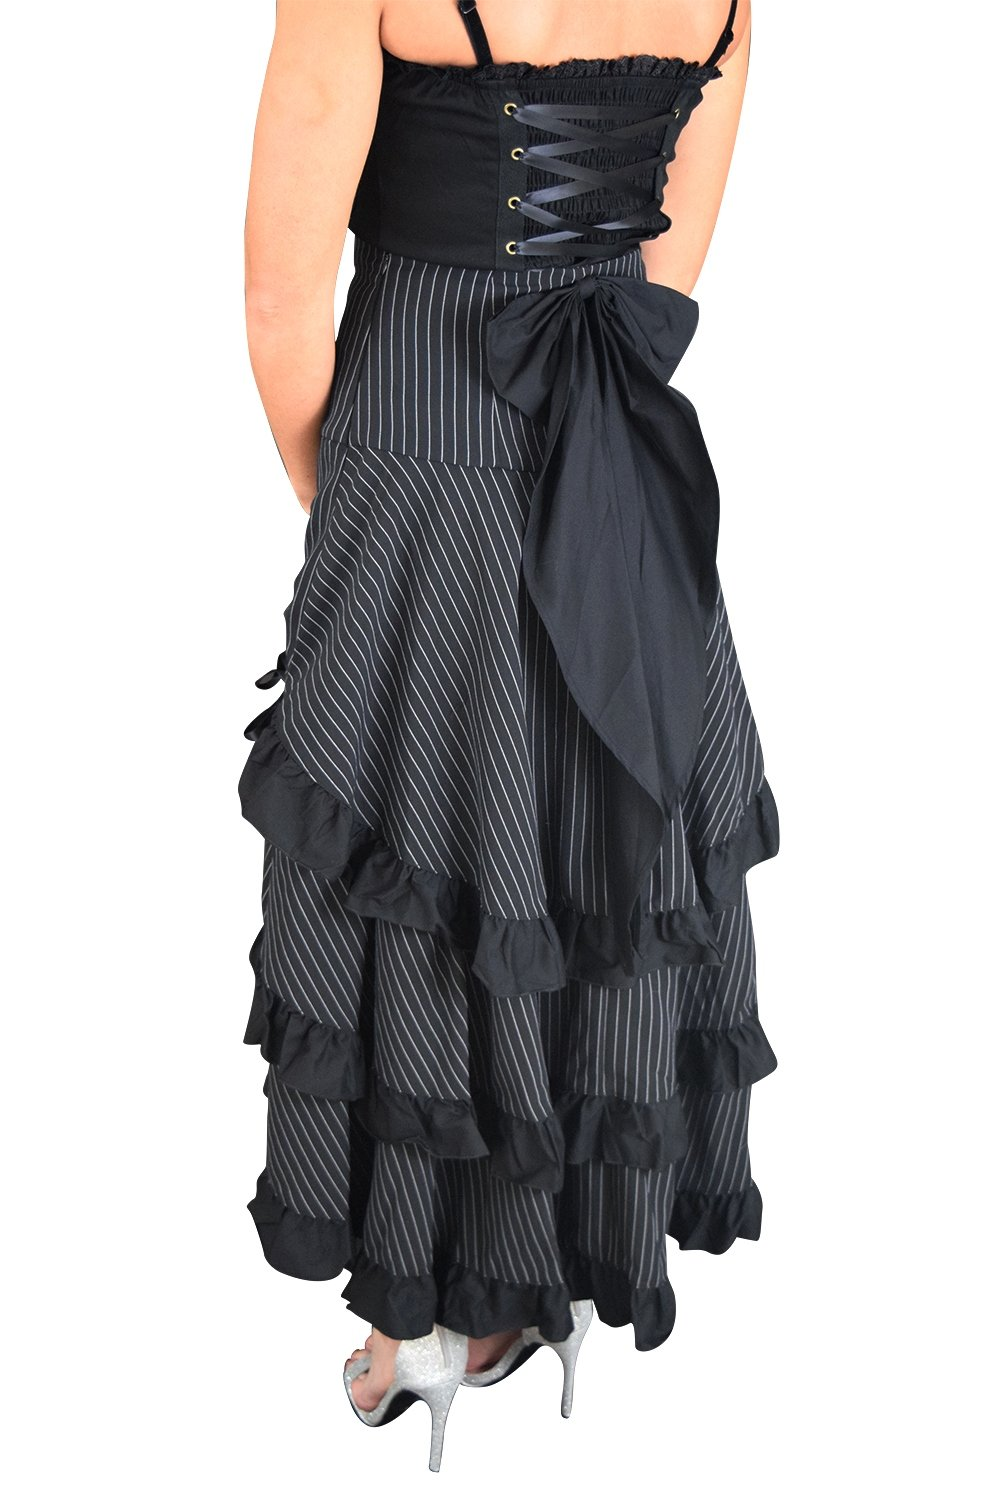 Gothic Victorian Steampunk Black Pinstriped Tiered Tail Long Stripe Bustle Skirt (14 (EU46))